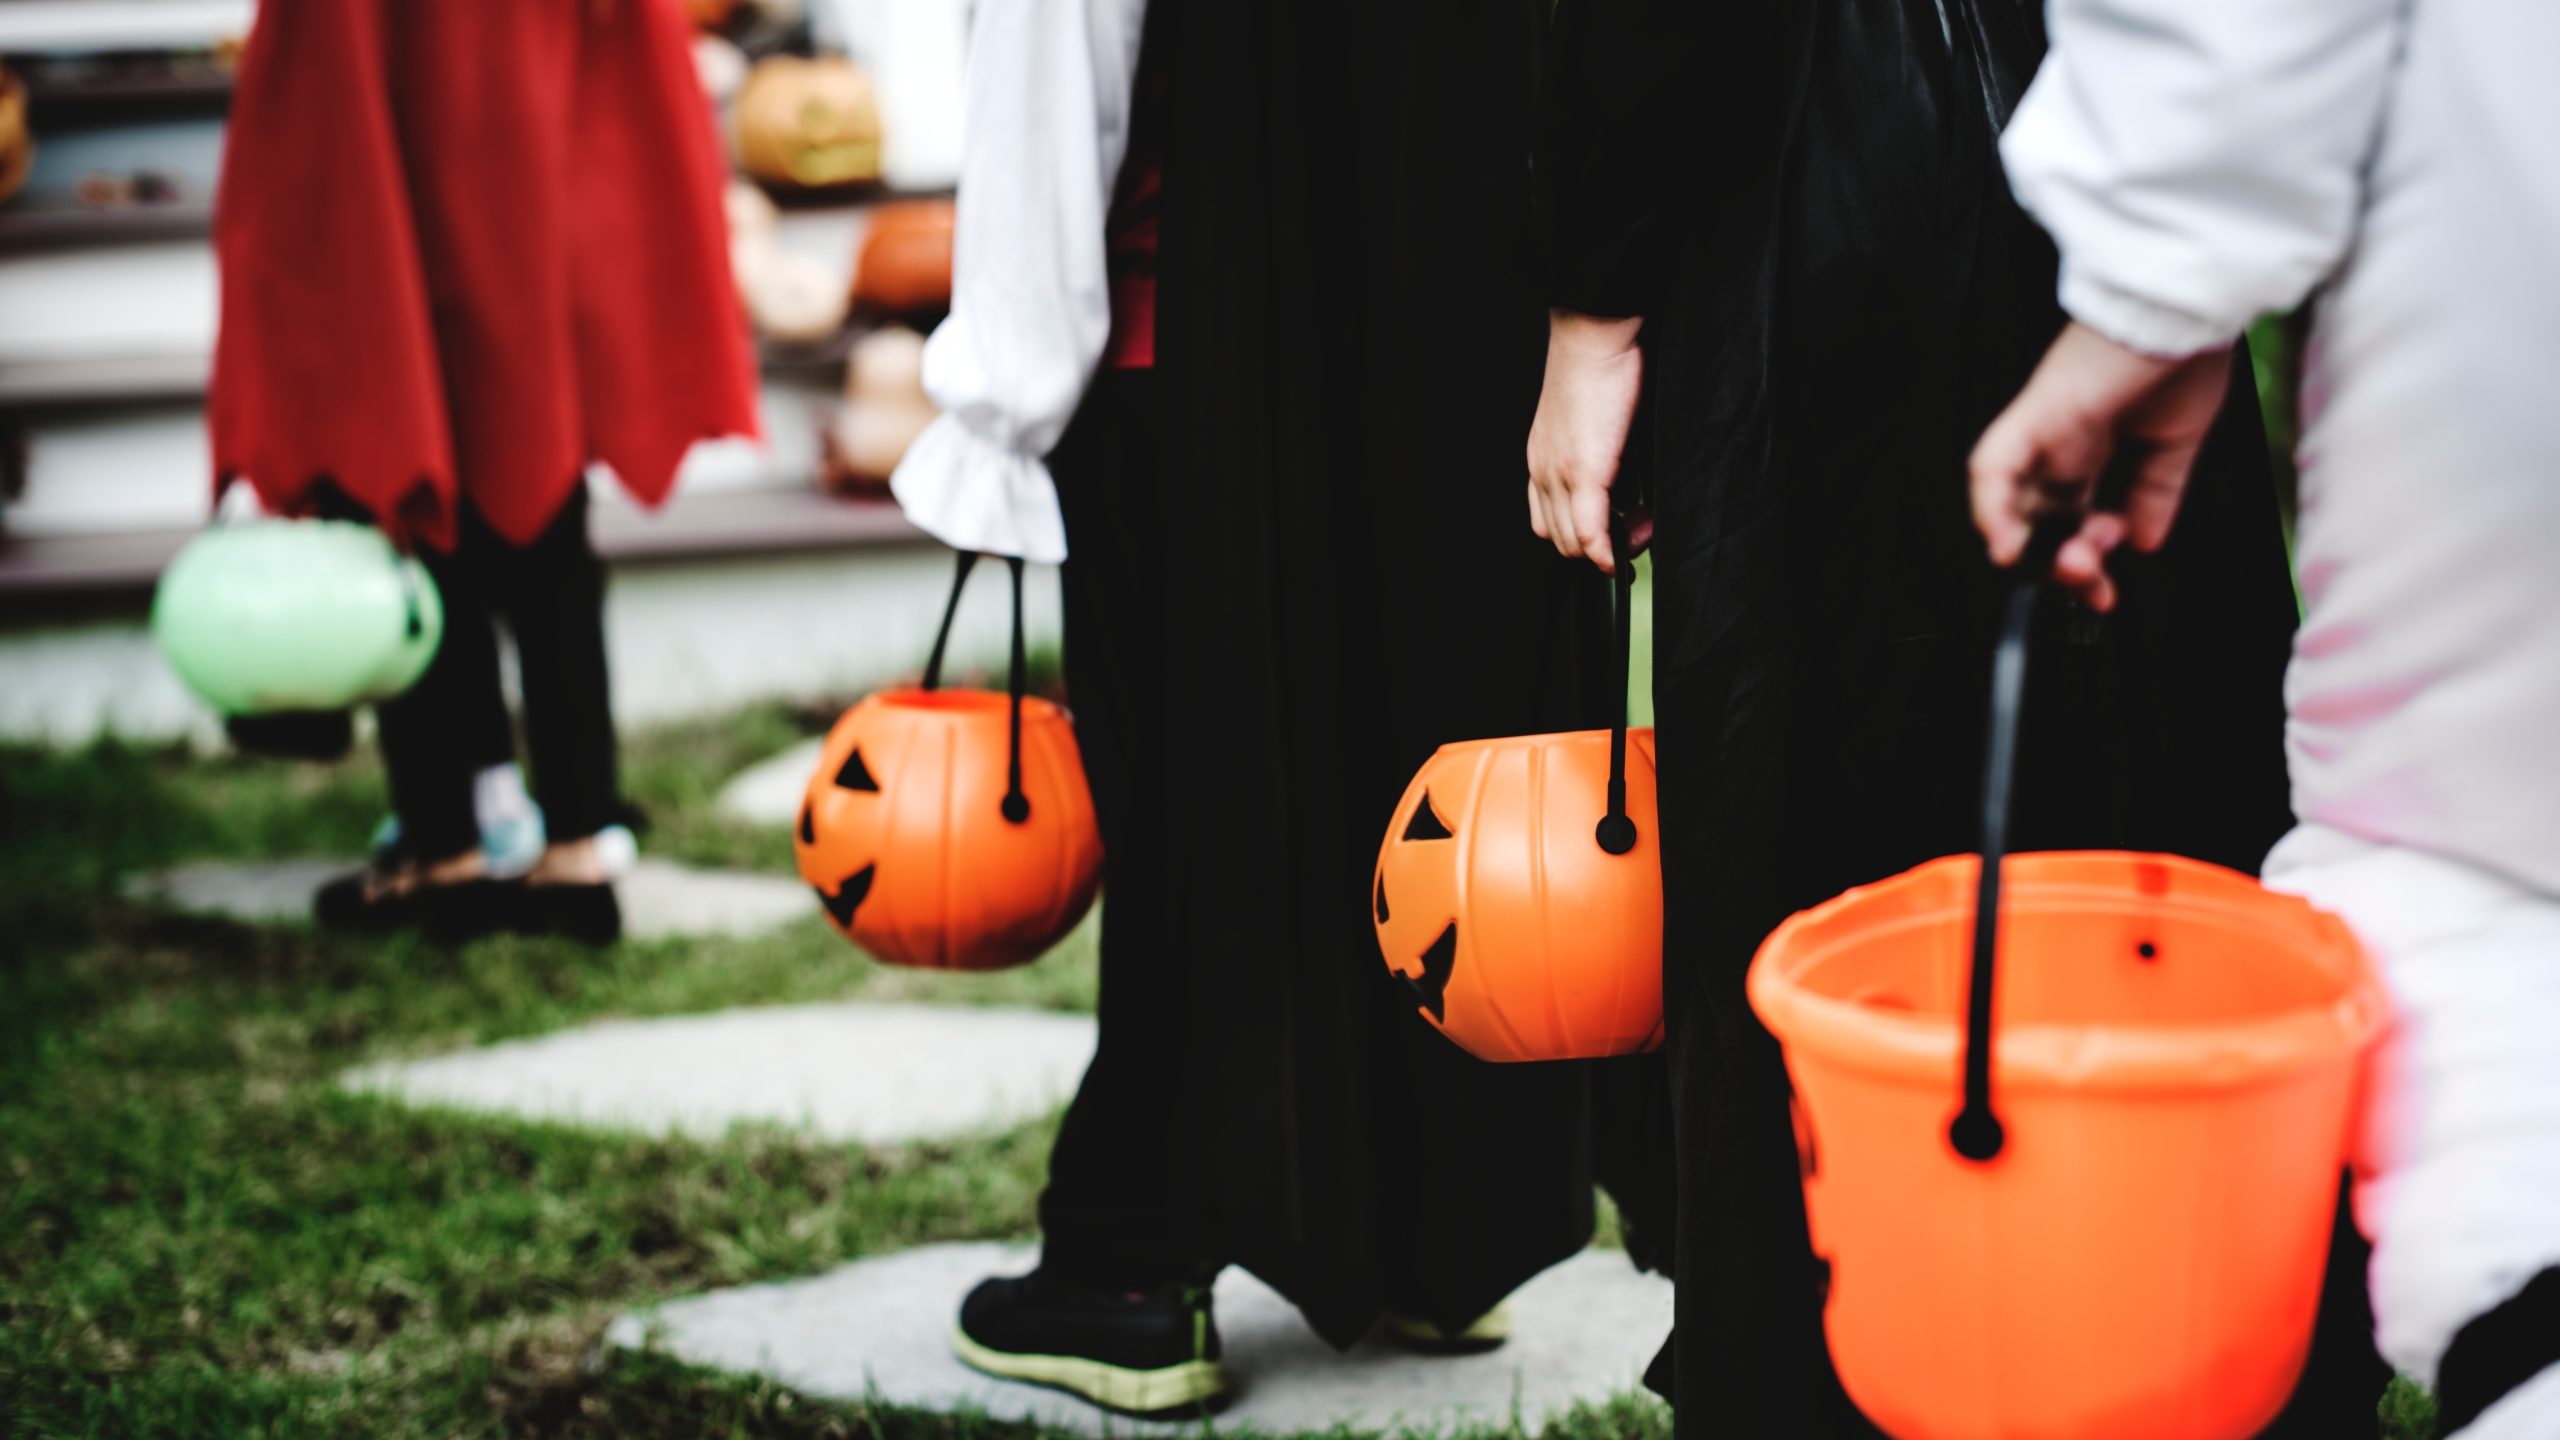 Brownsburg Indiana Halloween 2020 Hours Halloween 2019: Central Indiana trick or treat times   Fox 59